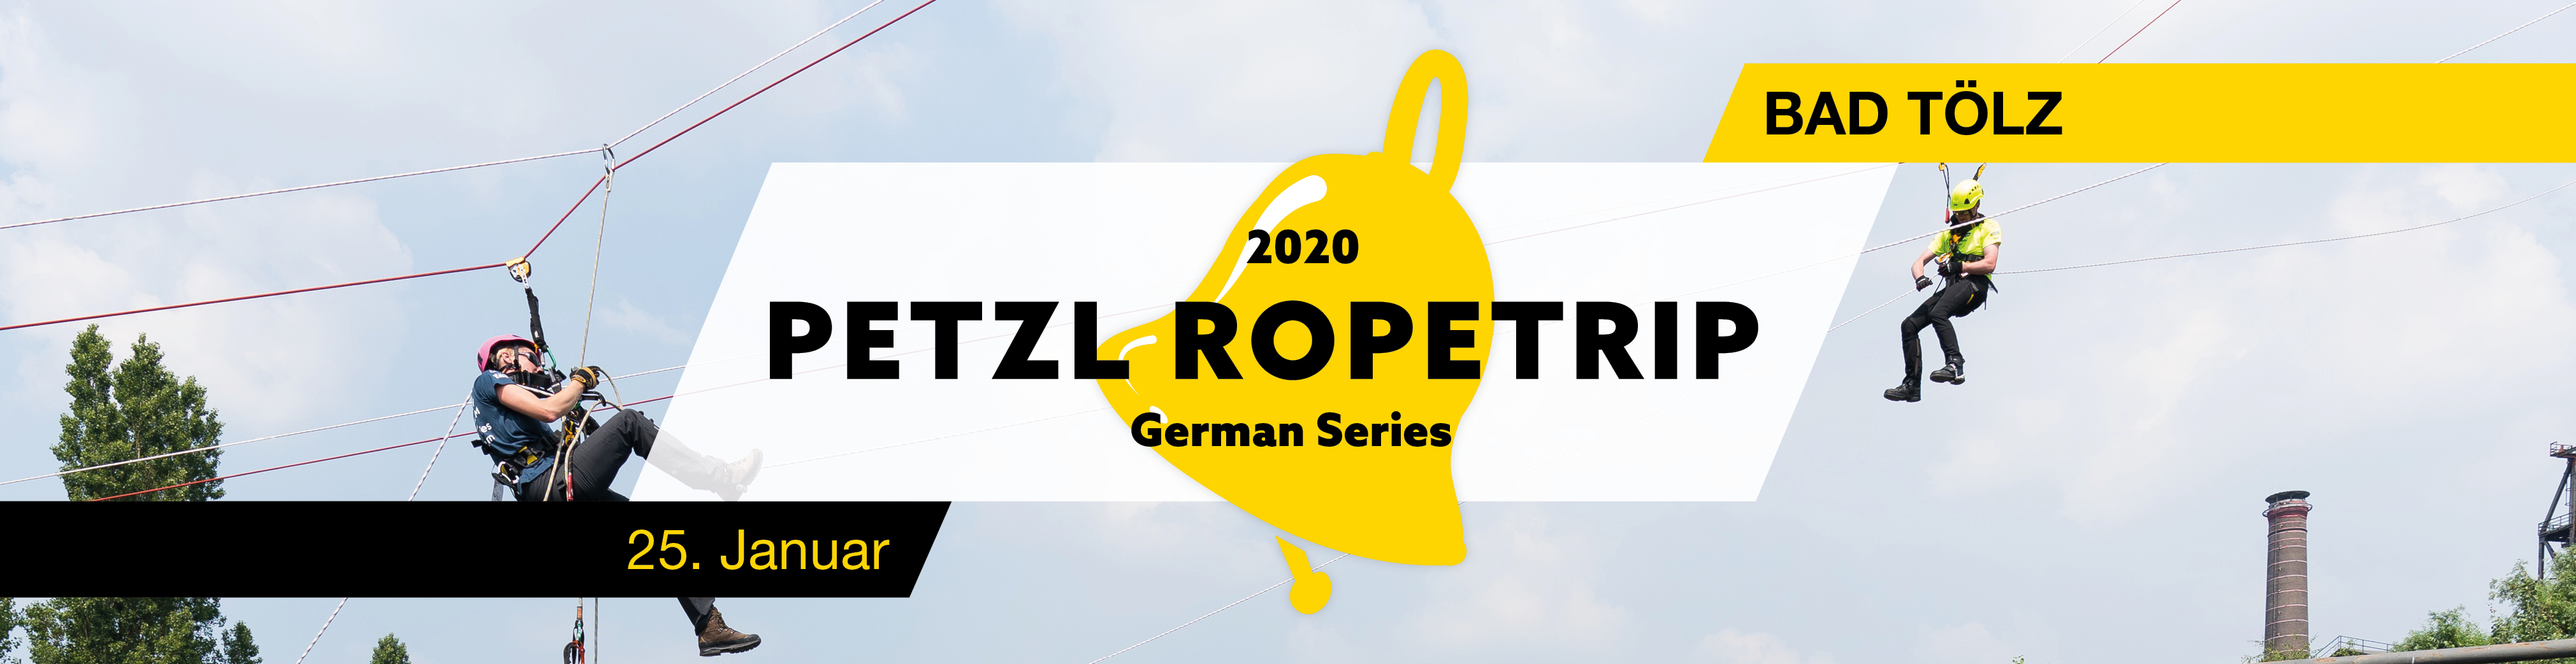 Petzl Ropetrip German Series